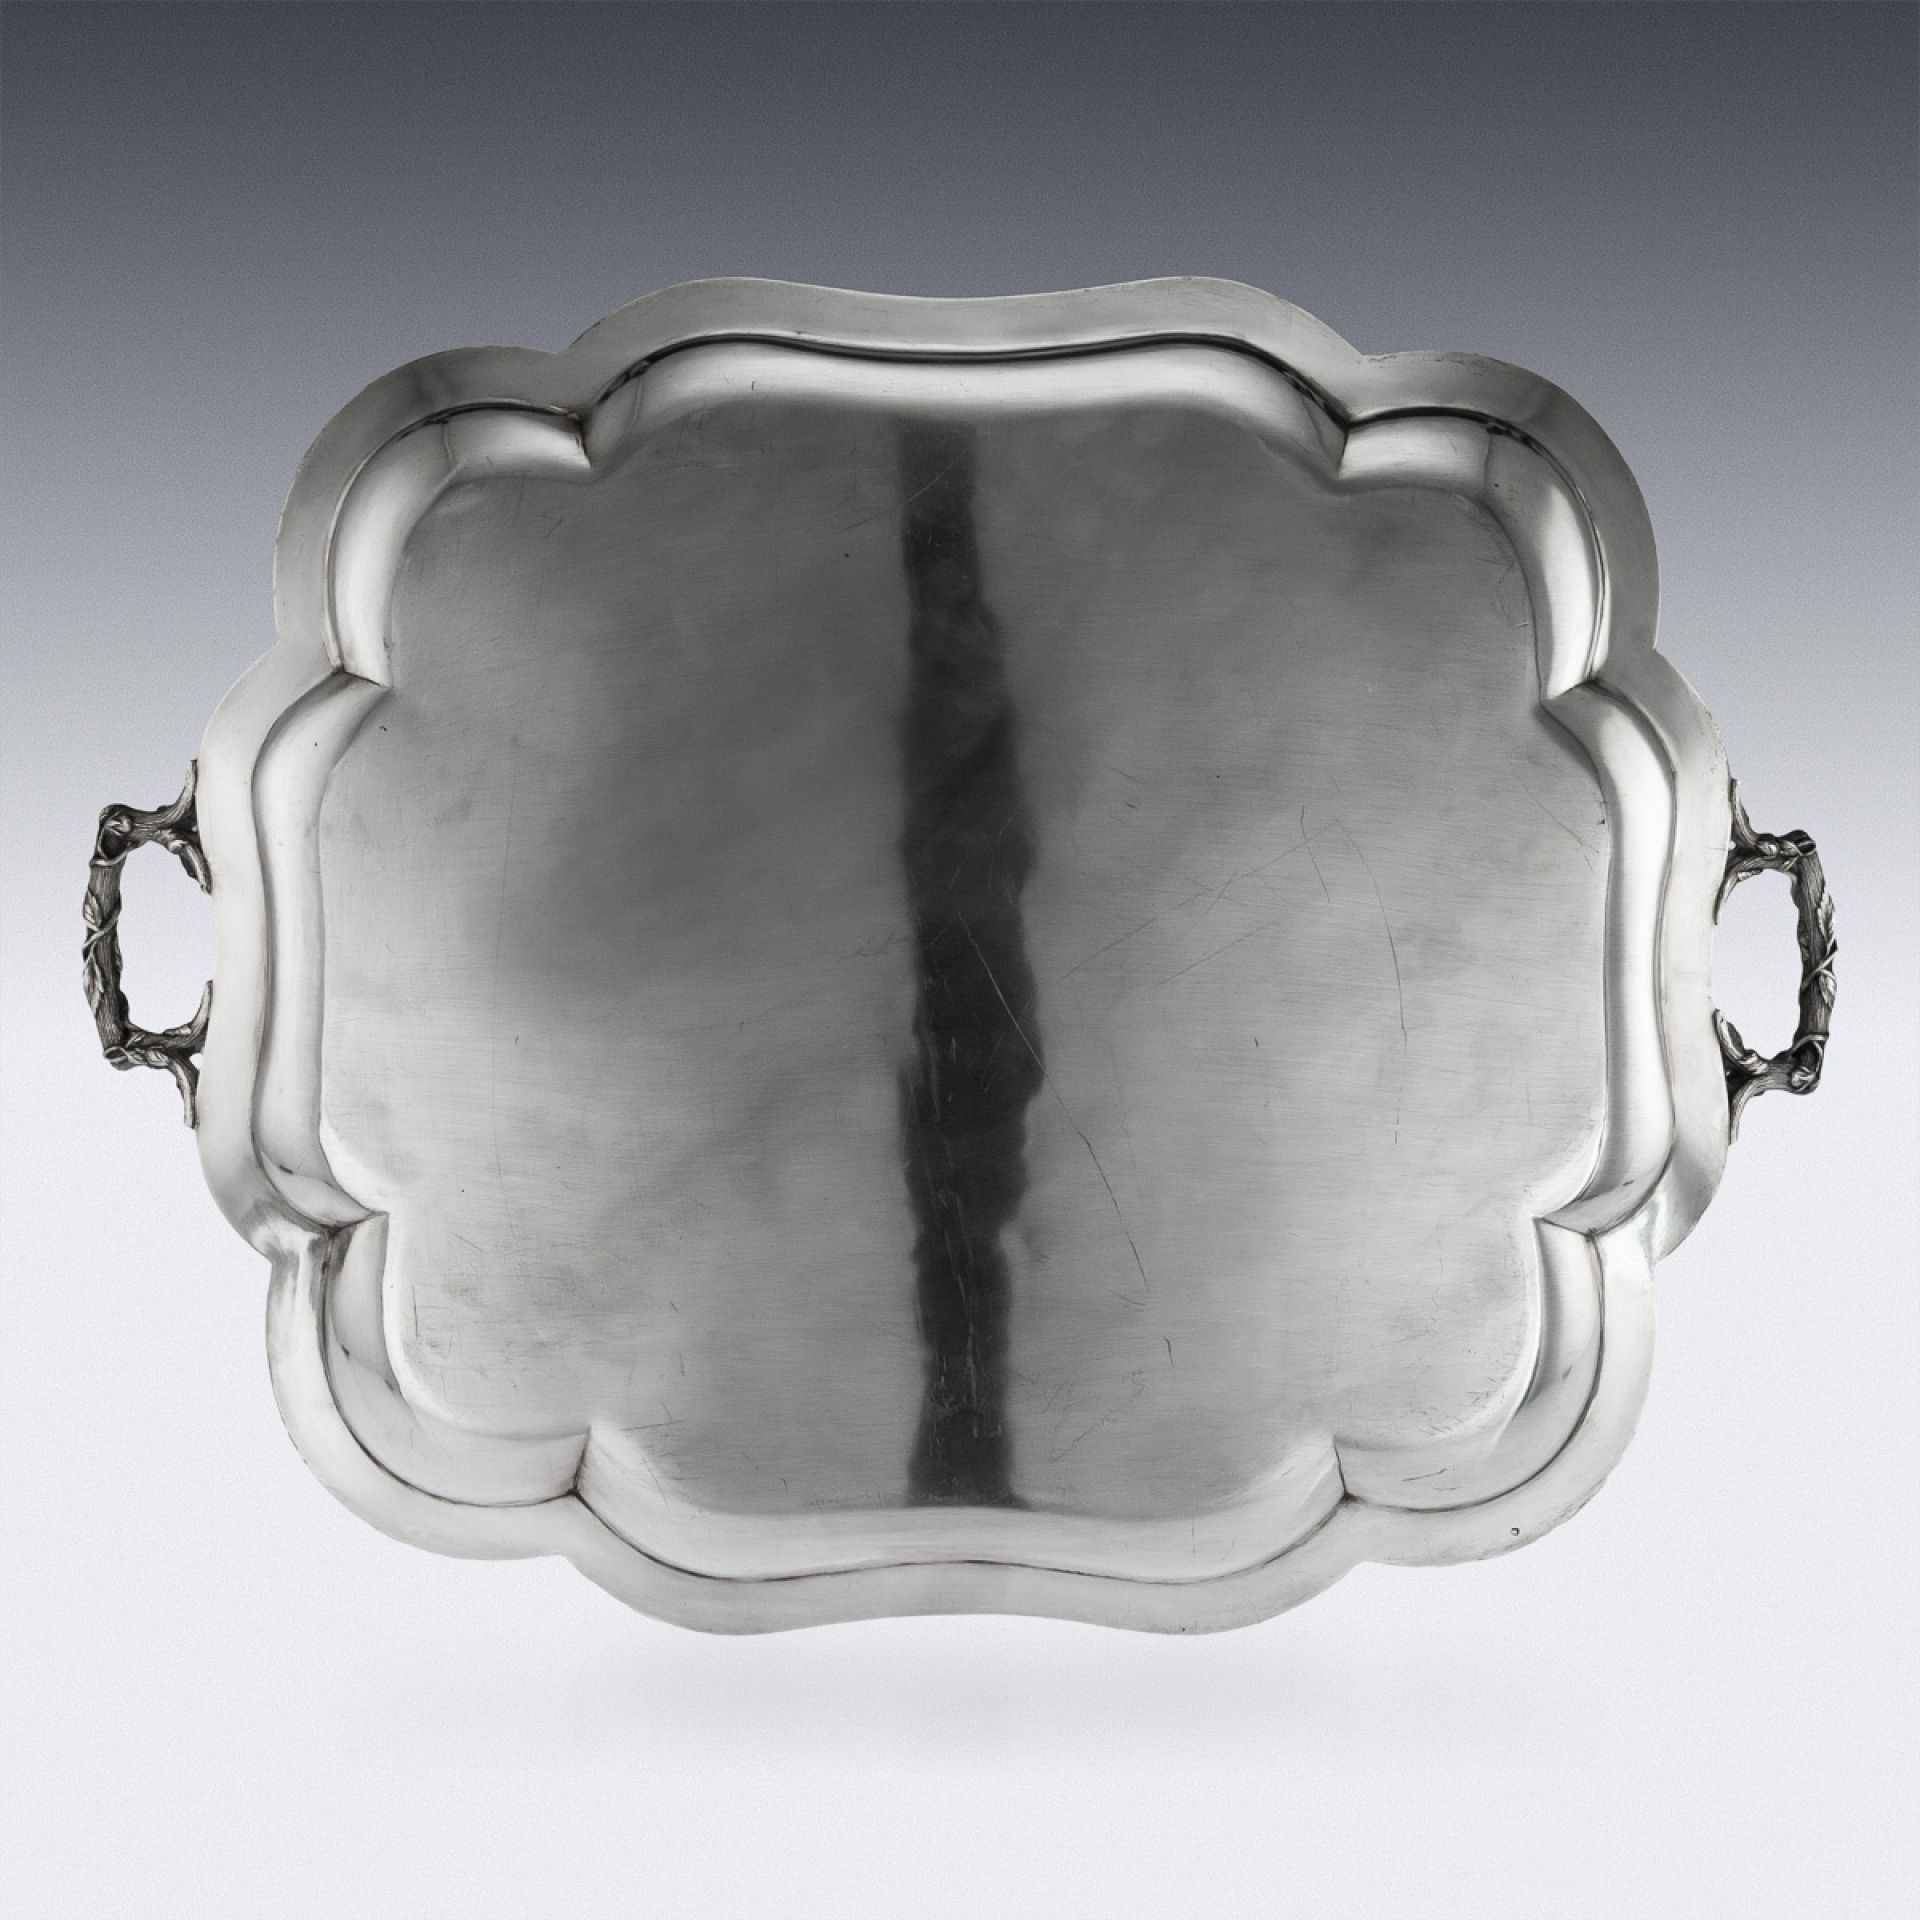 ANTIQUE 19thC FRENCH SOLID SILVER & NIELLO SERVING TRAY c.1870